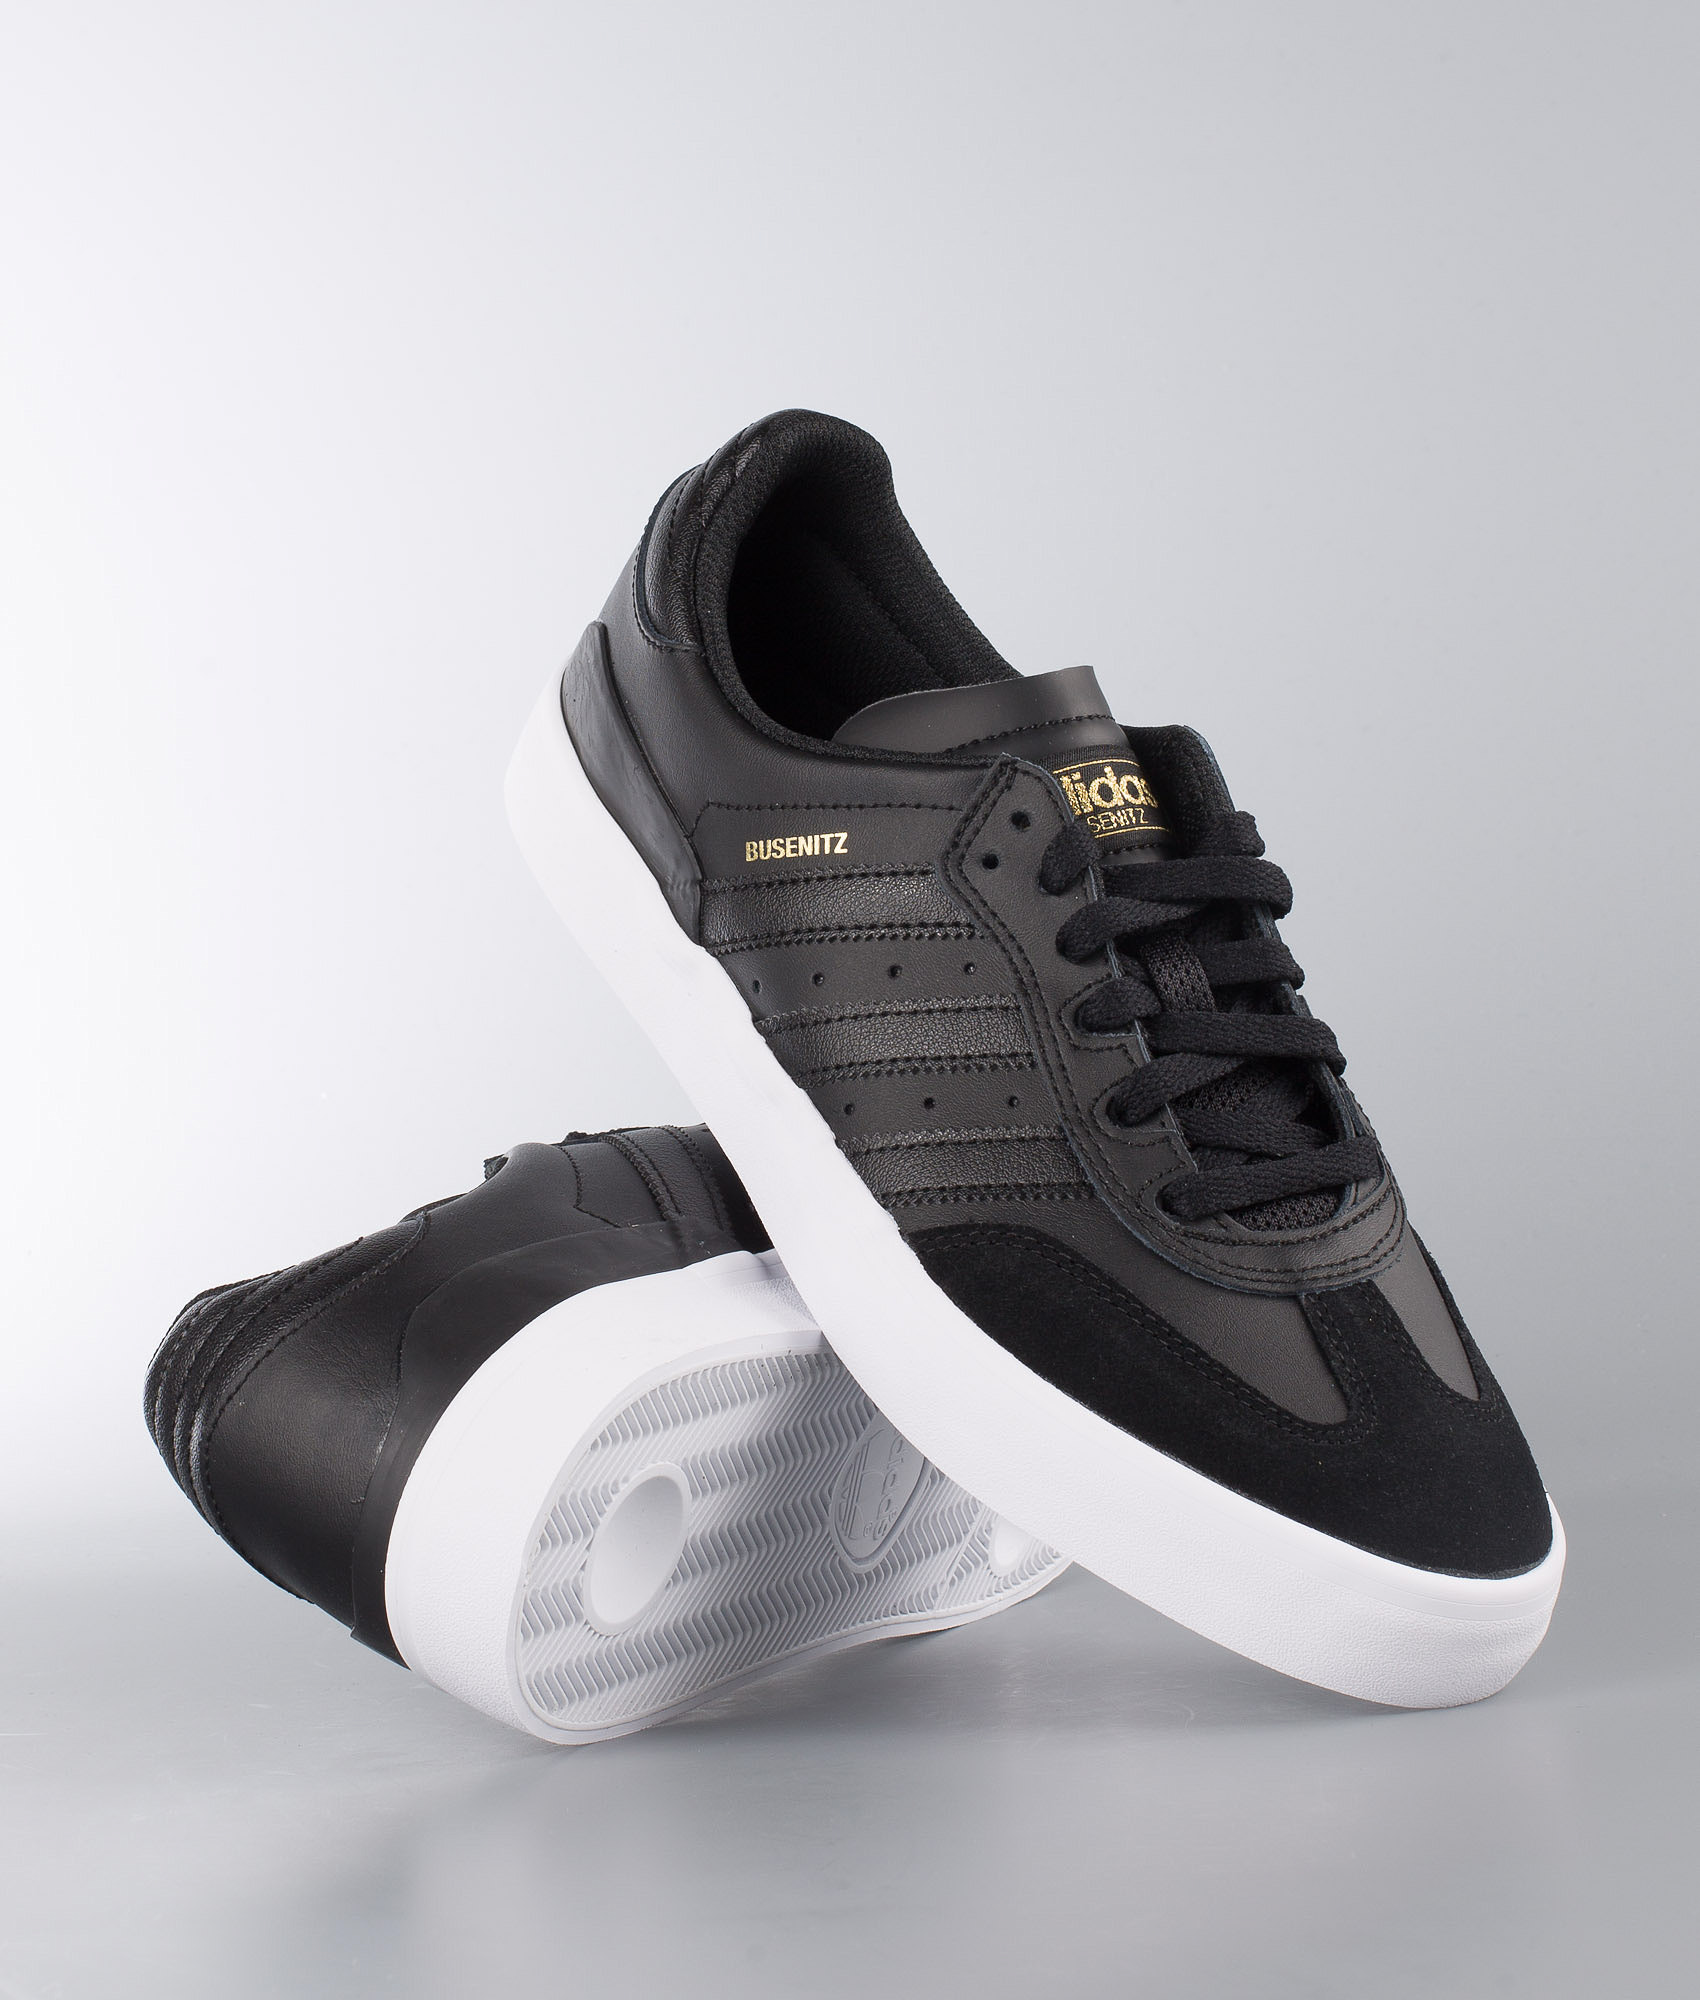 new concept 0474f 3fbf8 Adidas Skateboarding Busenitz Vulc Rx Shoes Black. Core ...